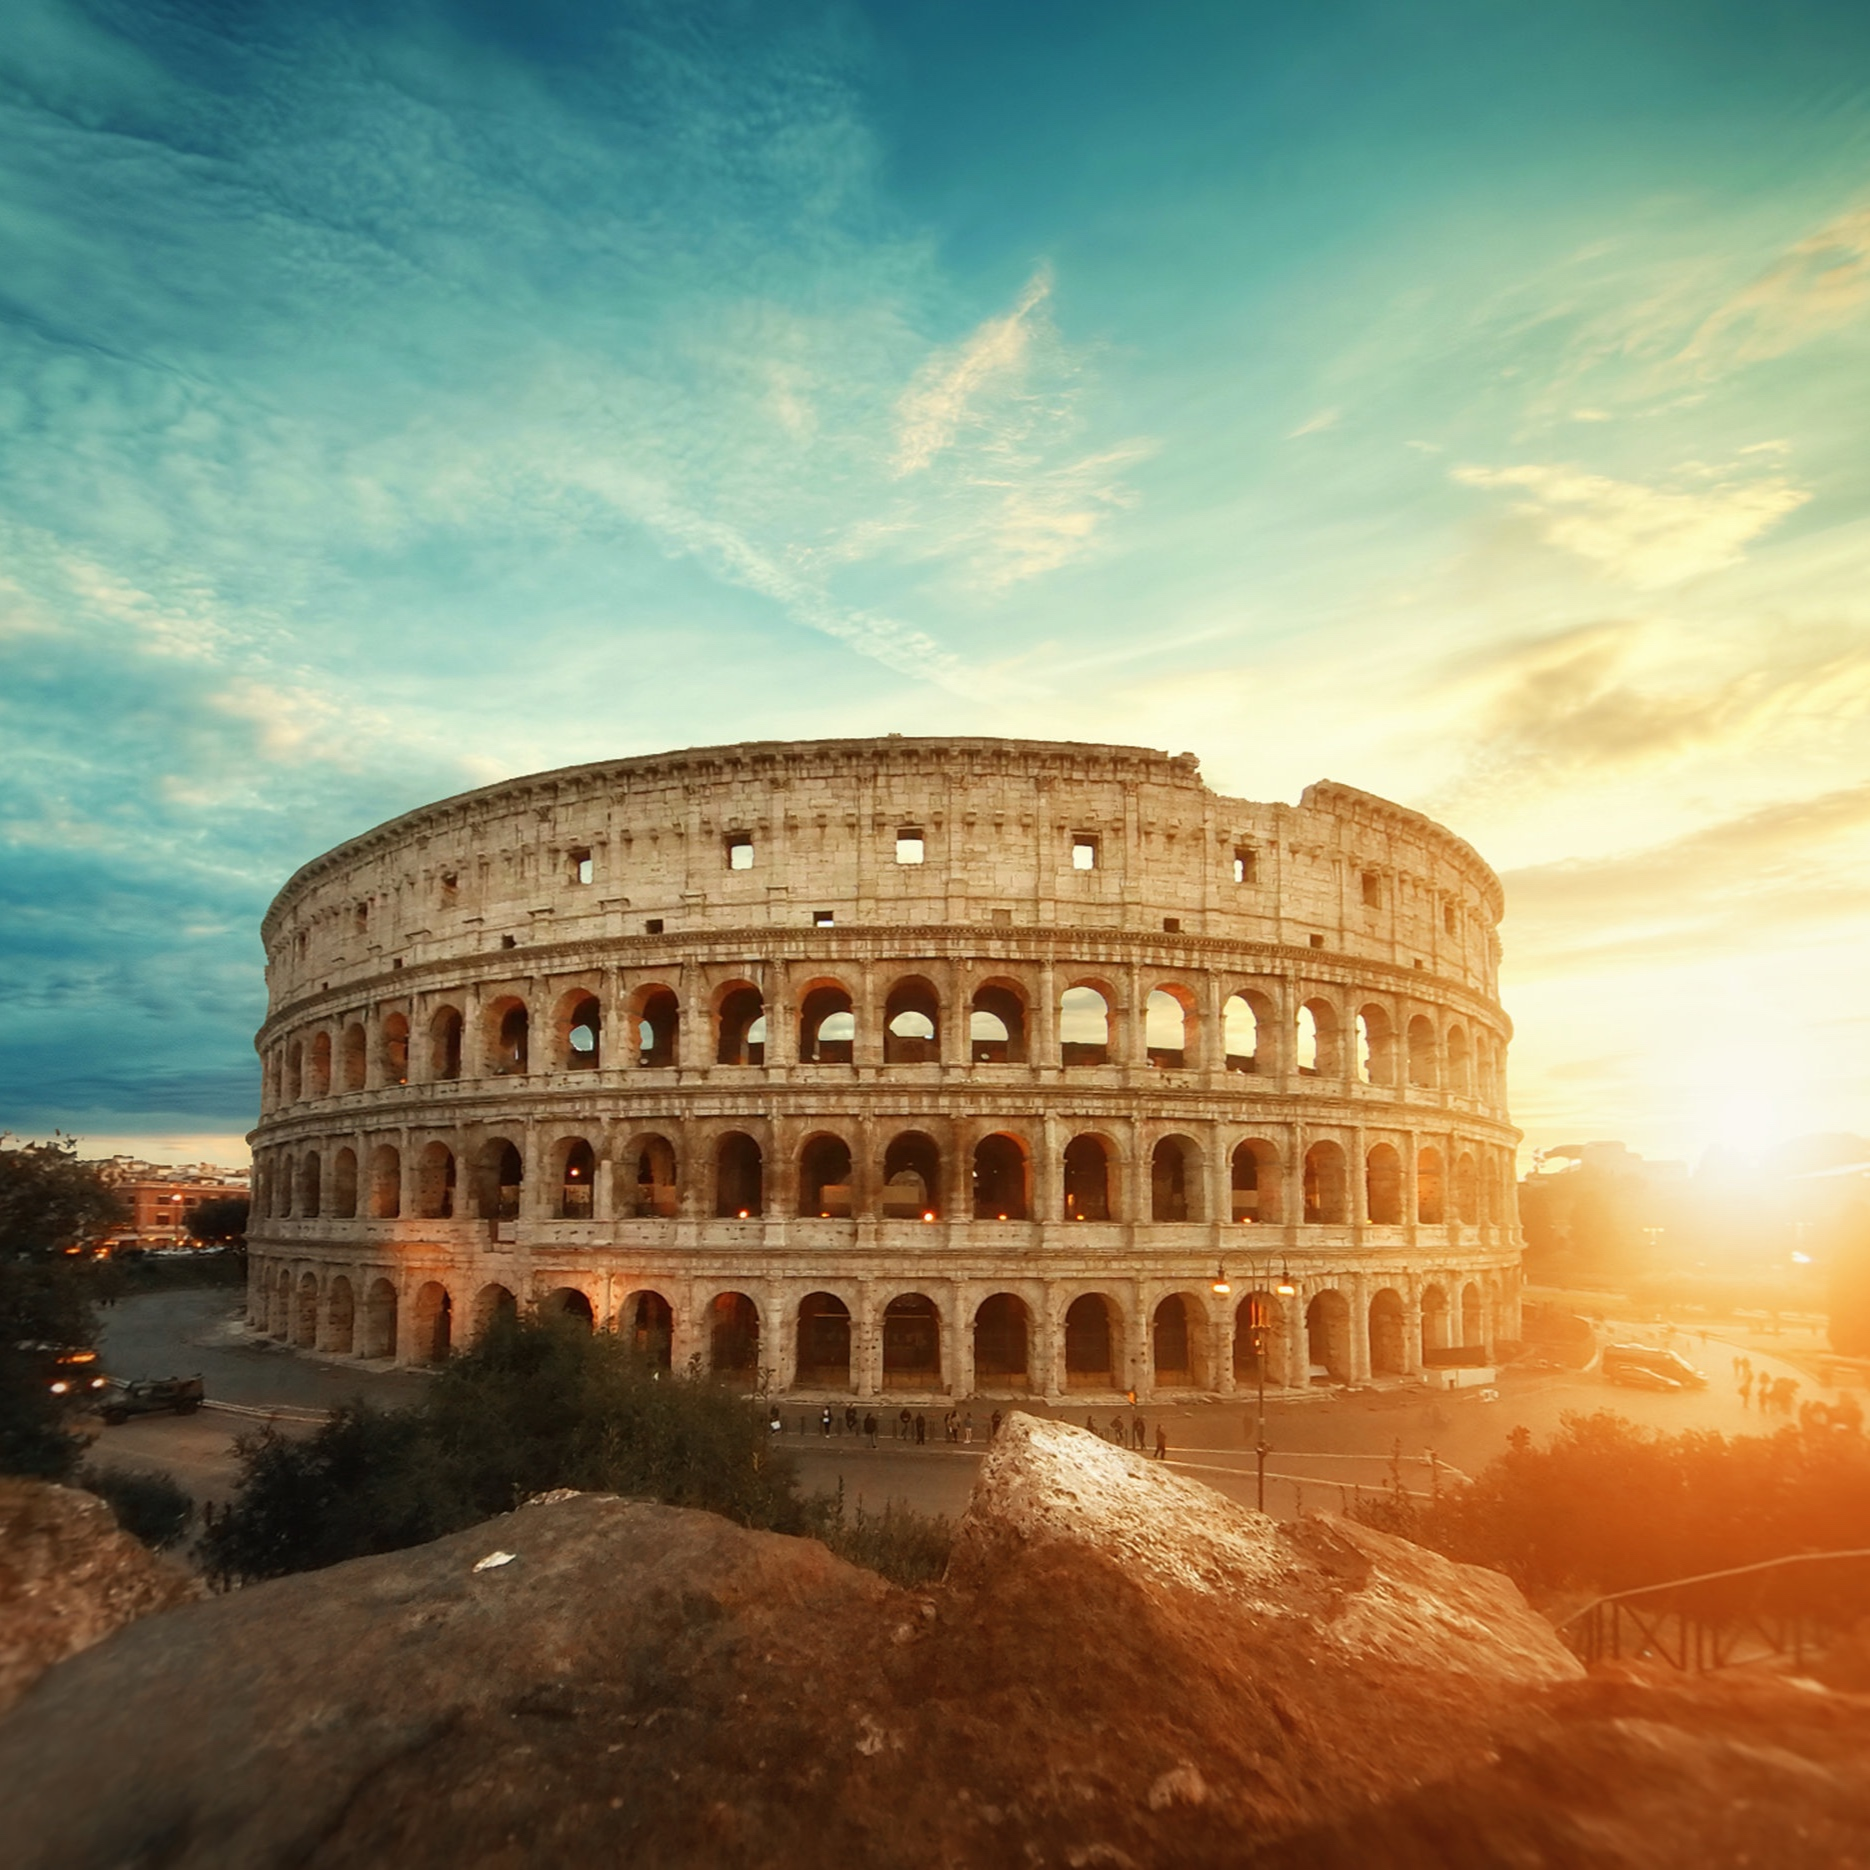 Travelling to Rome with Food Allergies   From Kyle, Food Allergies Rock